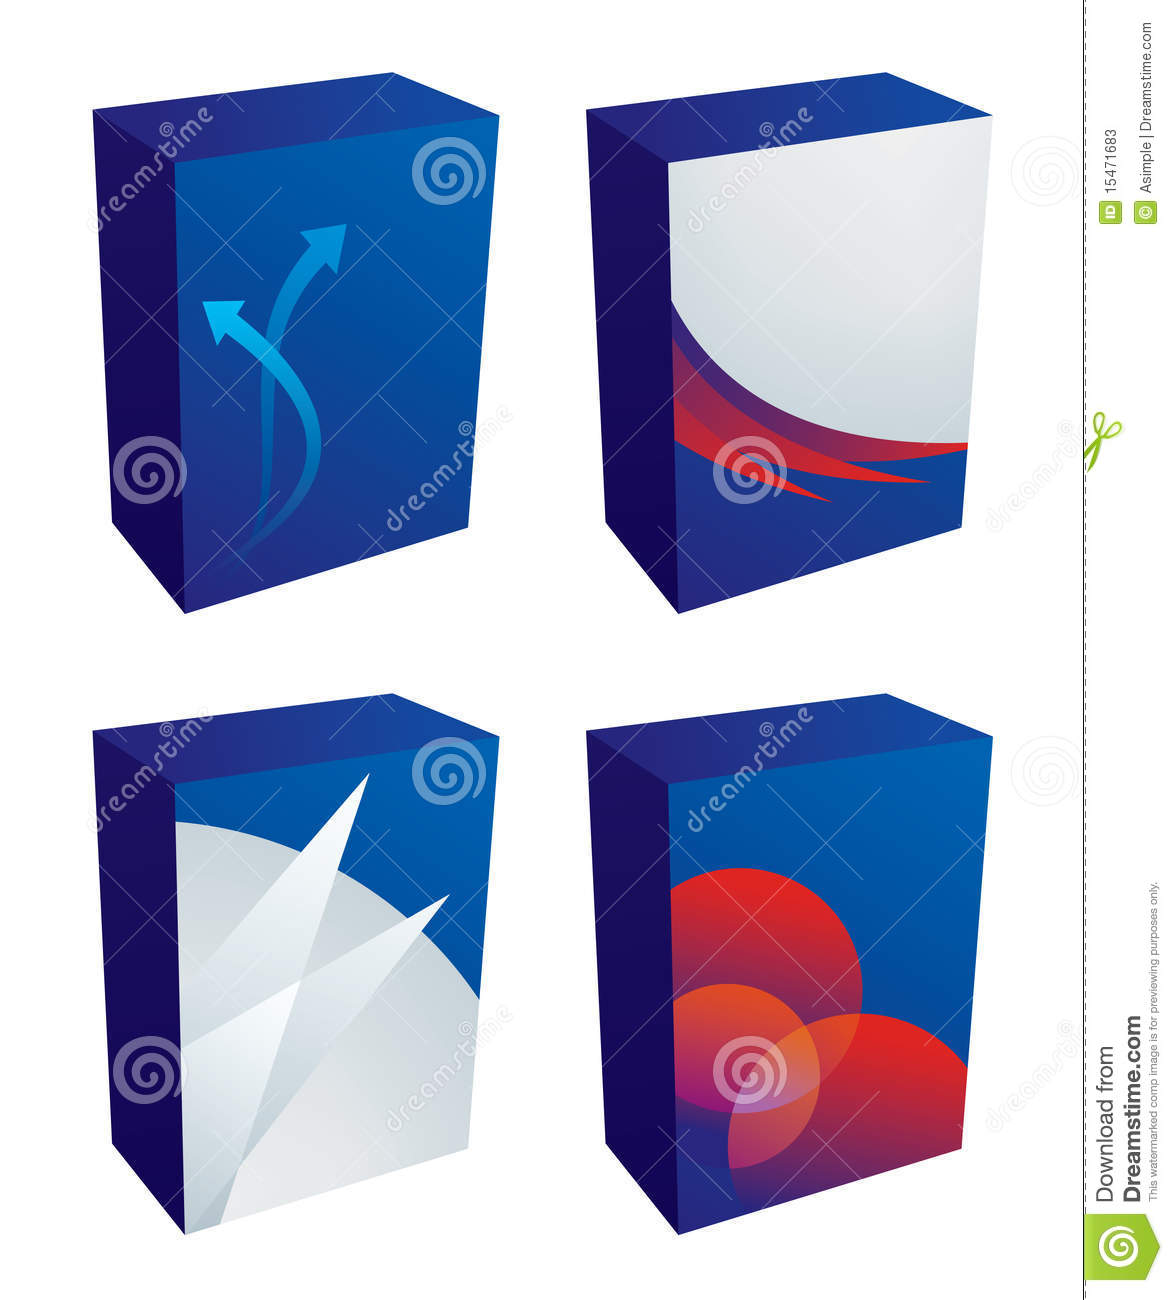 Vector software boxes stock photos image 15471683 Vector image software